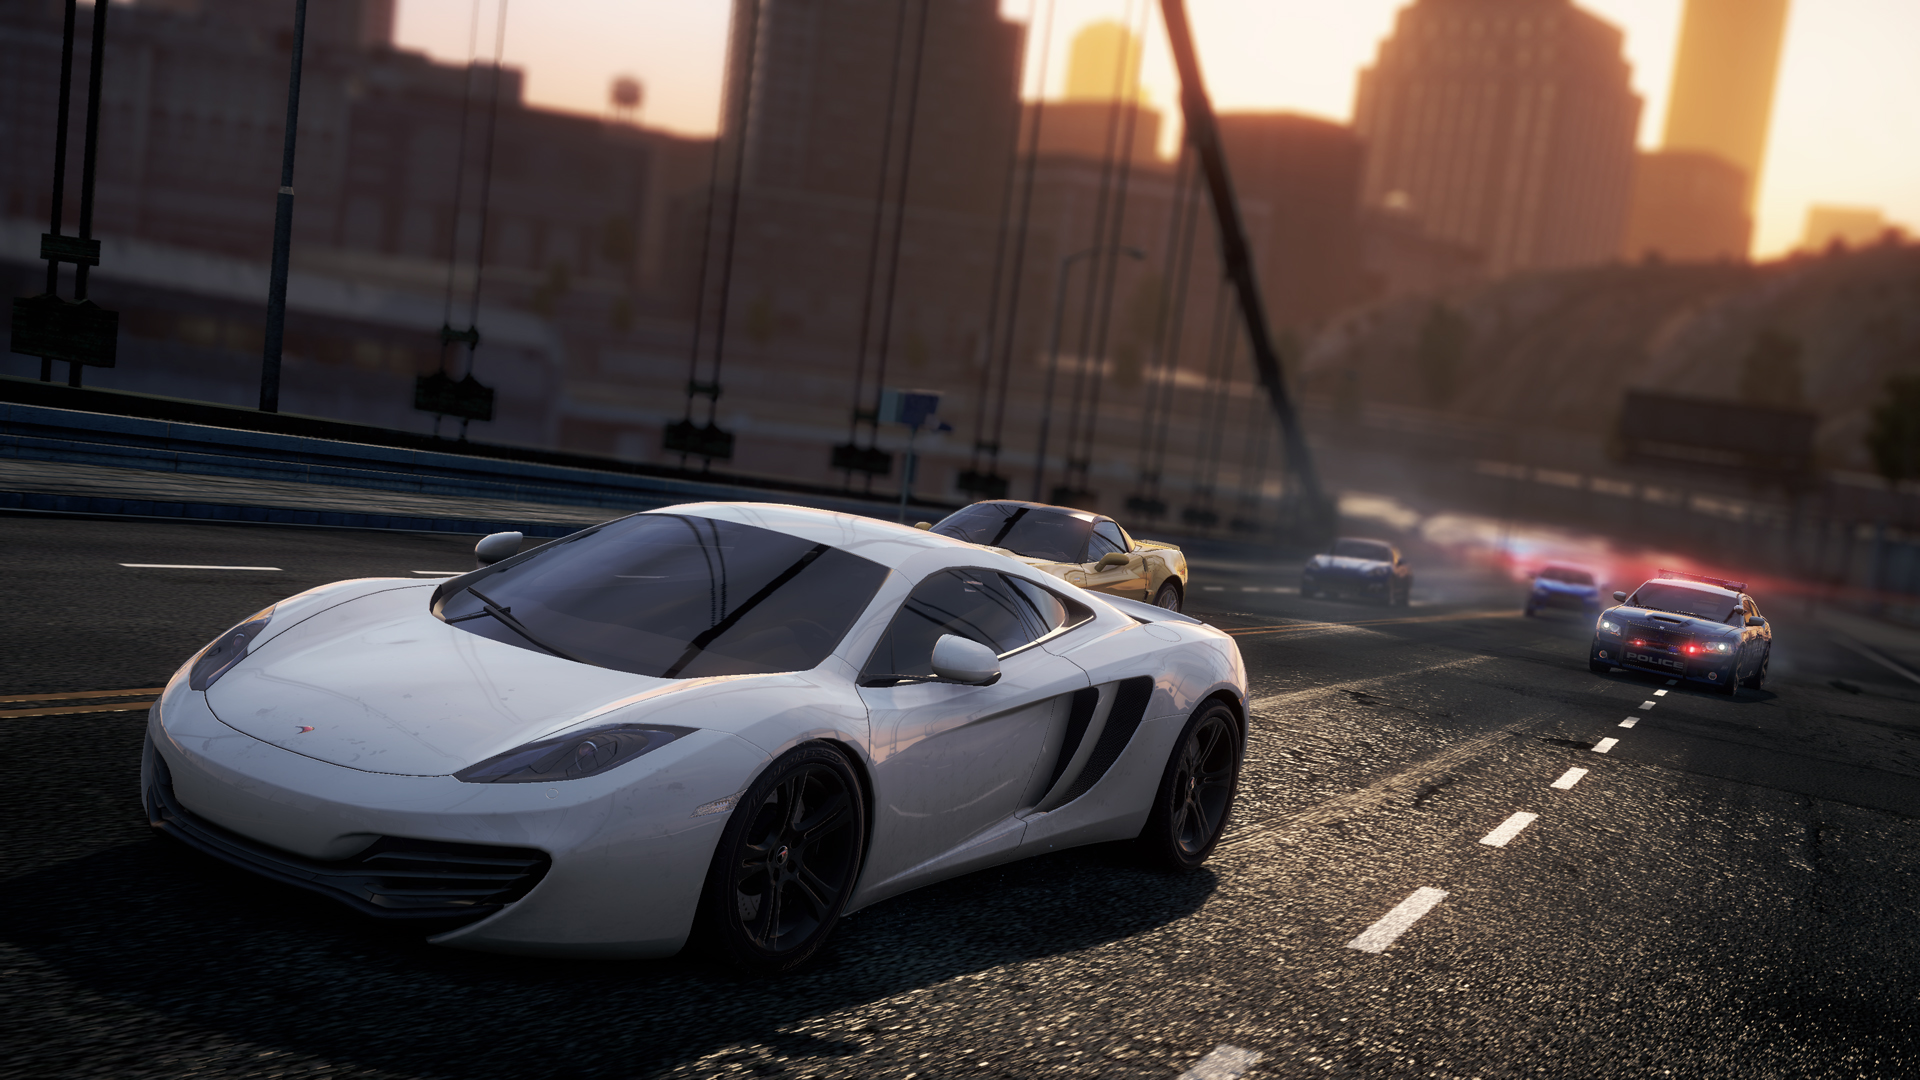 Free Need For Speed Wallpaper 40291 1920x1080 Px